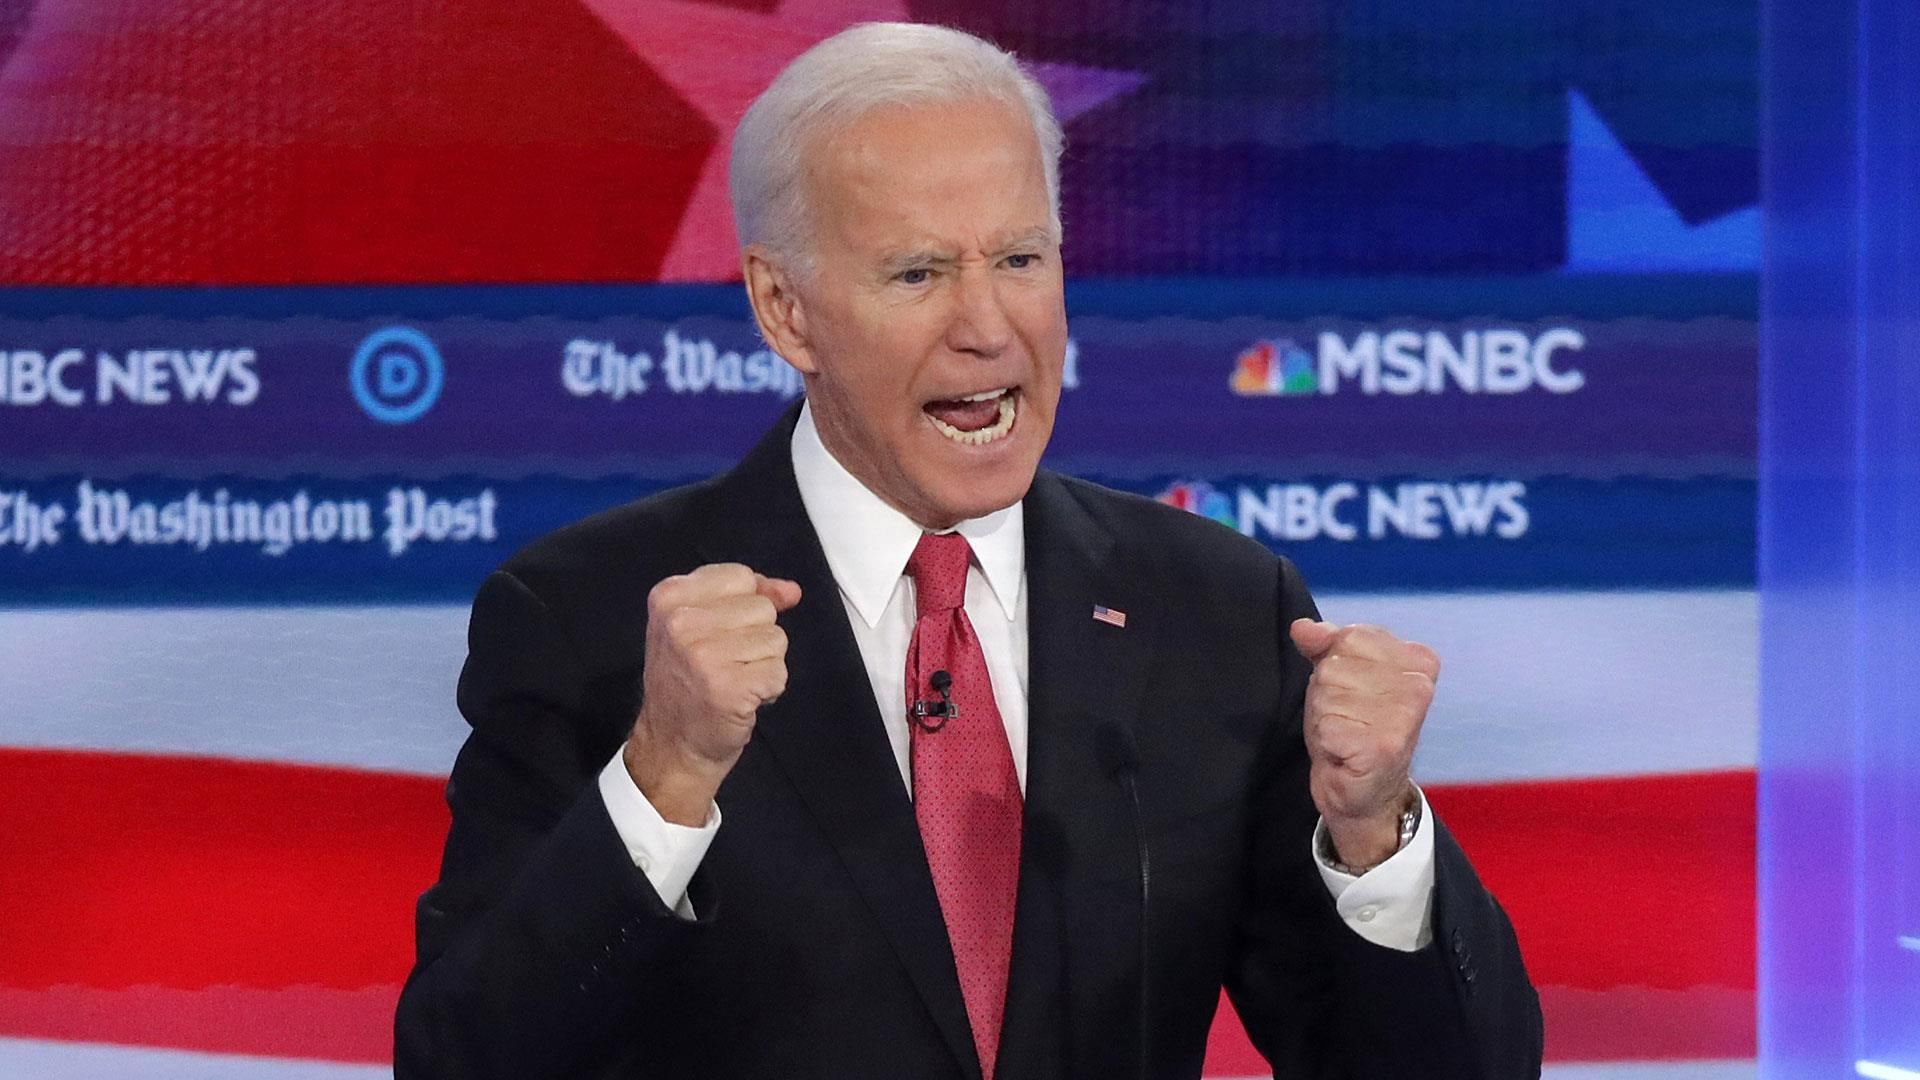 Biden stumbles on hot button issues — women and race